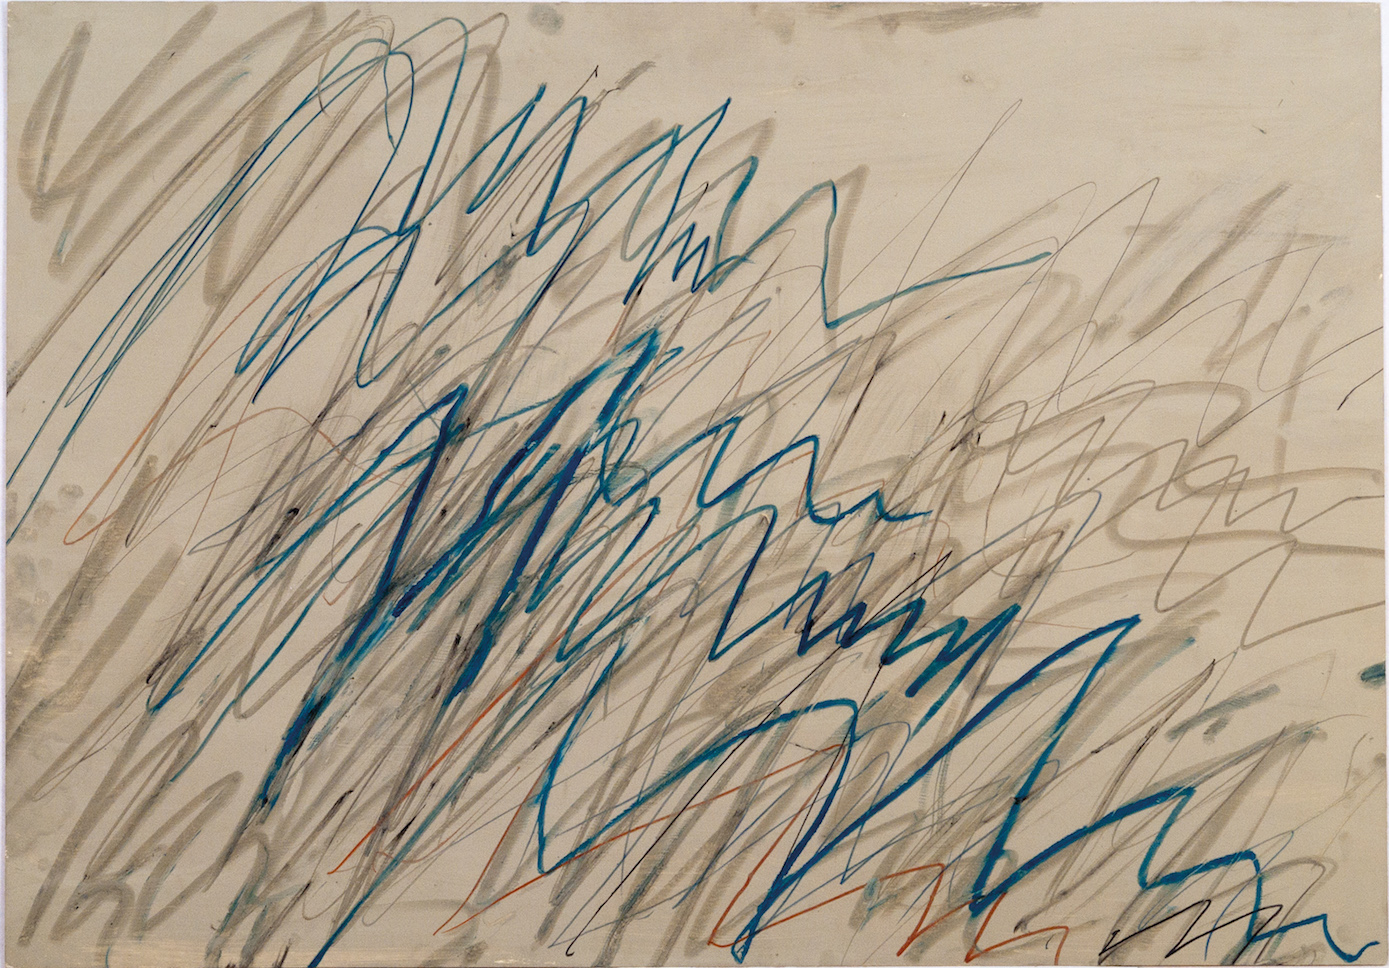 Cy Twombly, Untitled, 1971. Courtesy: Cy Twombly Foundation.